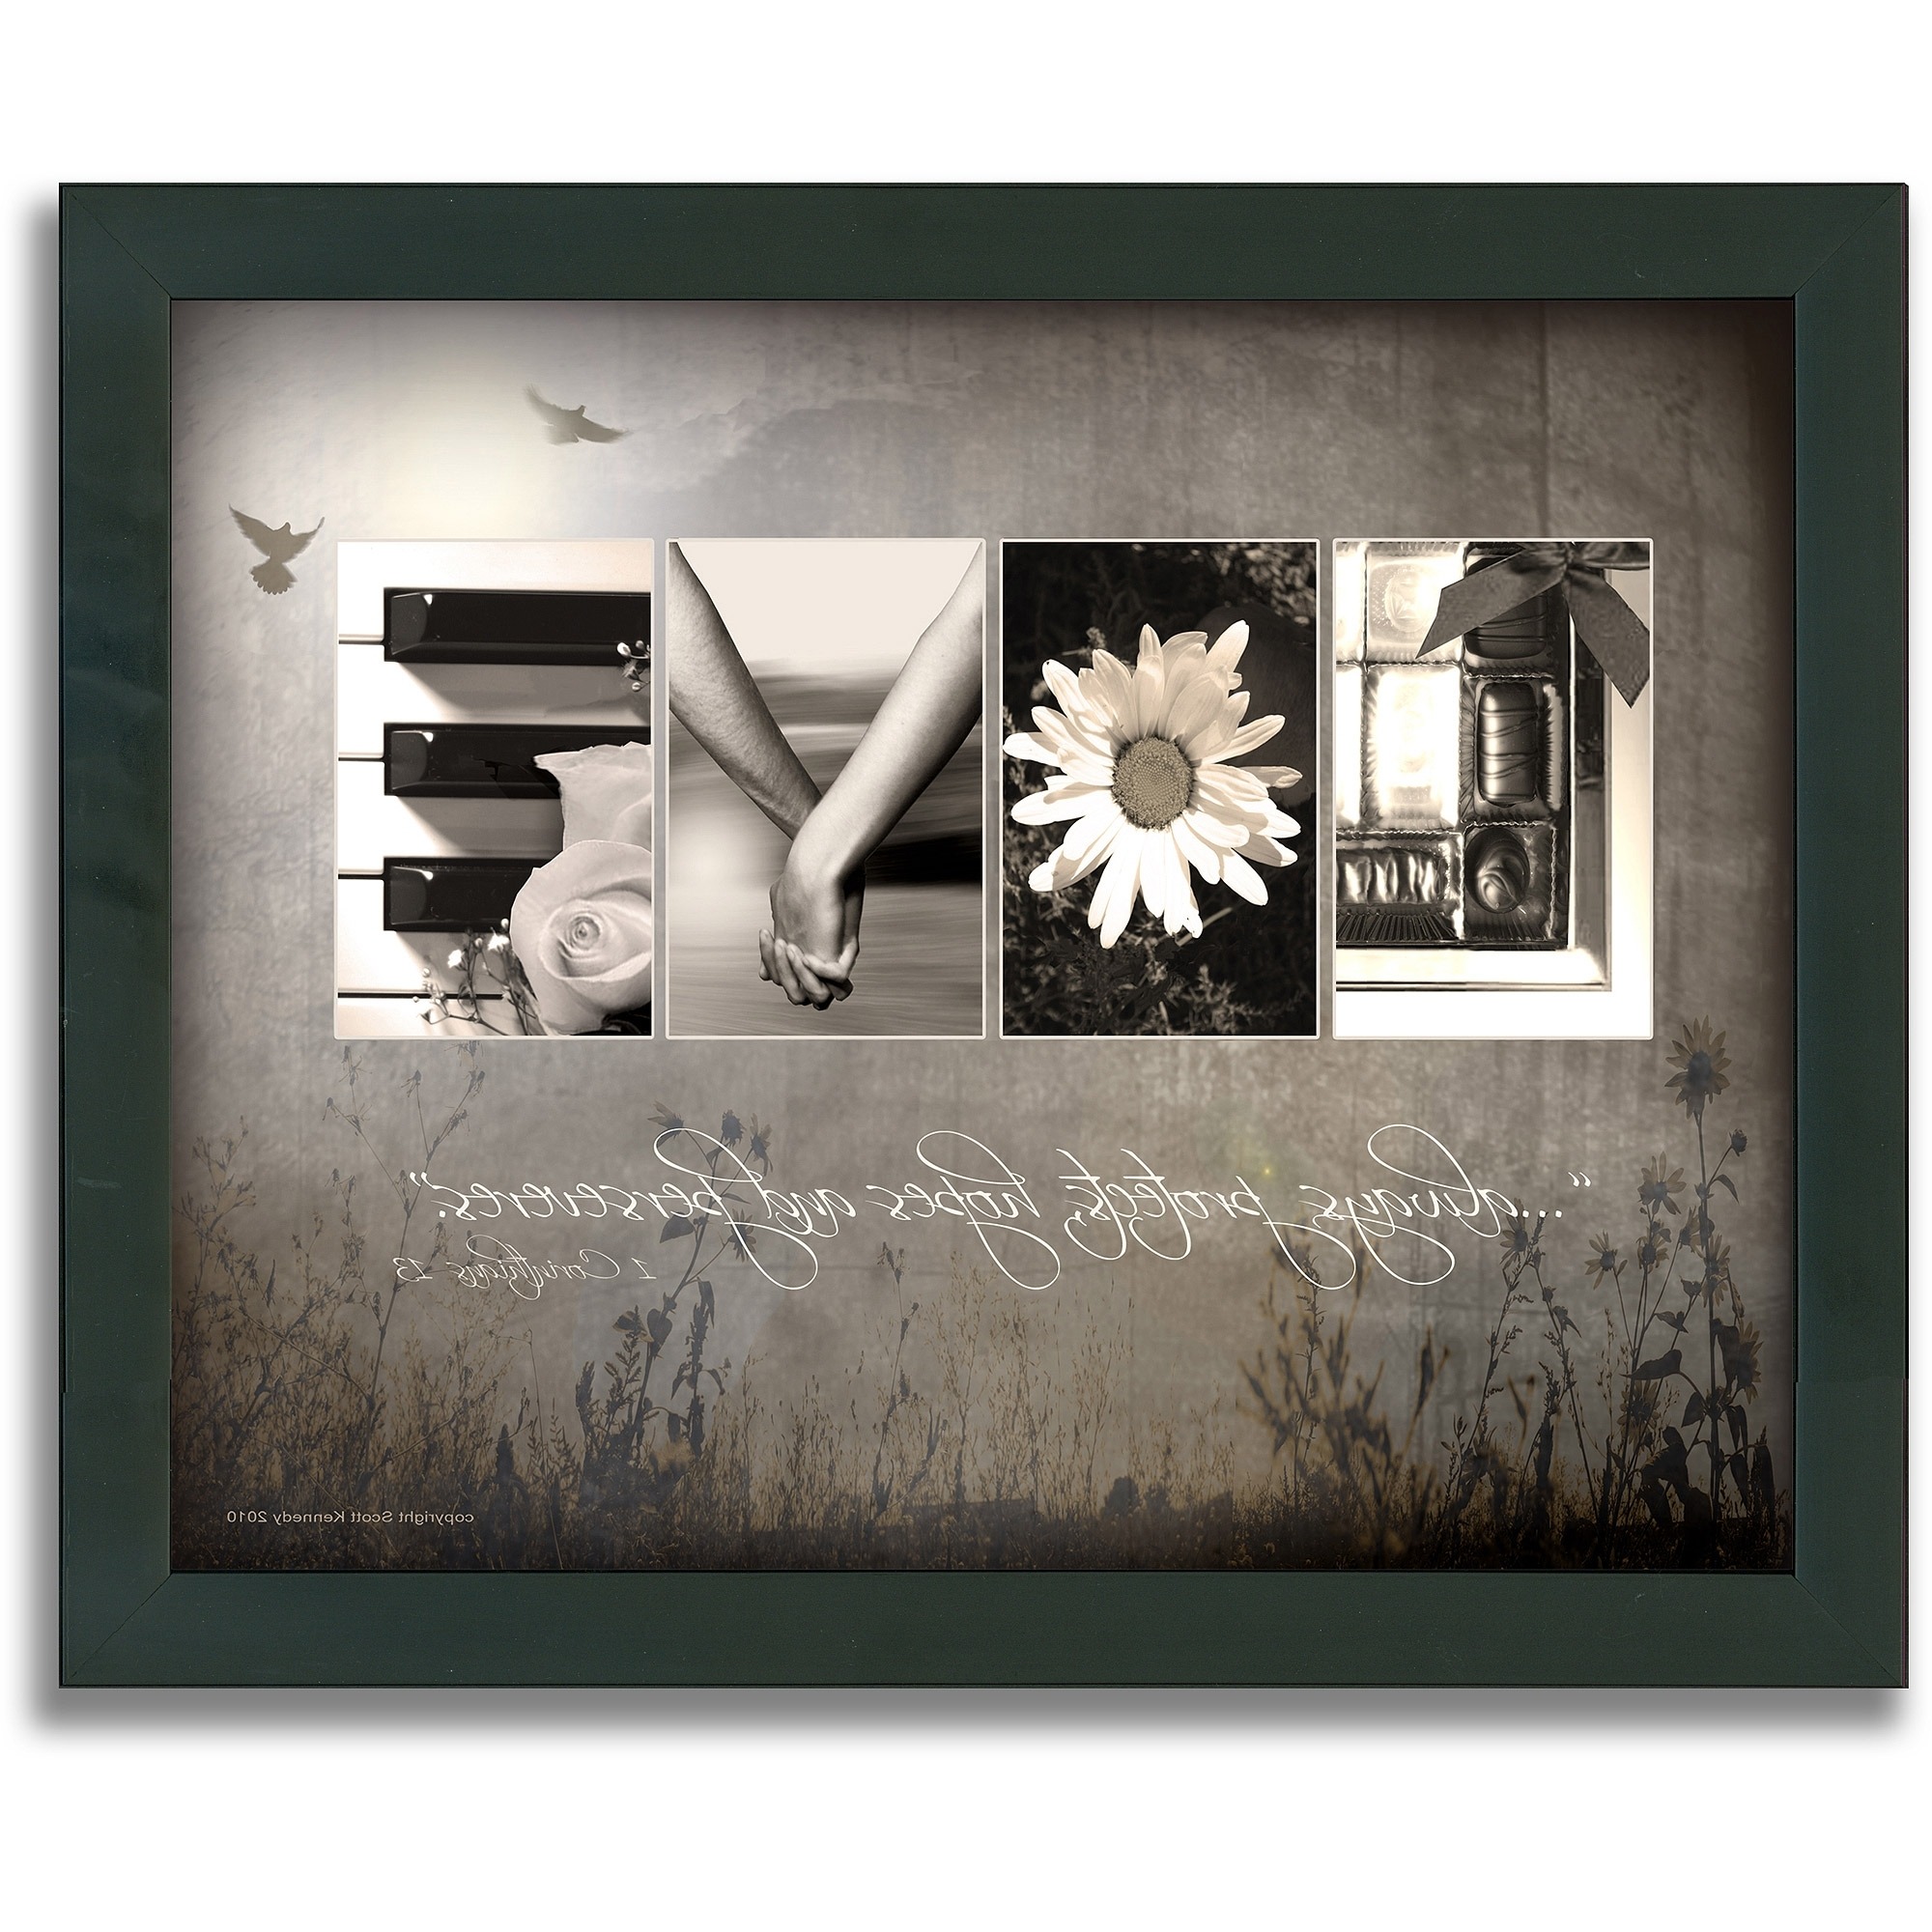 Wall Art At Walmart Within Recent Personal Prints Love Letters Framed Canvas Wall Art – Walmart (View 6 of 15)